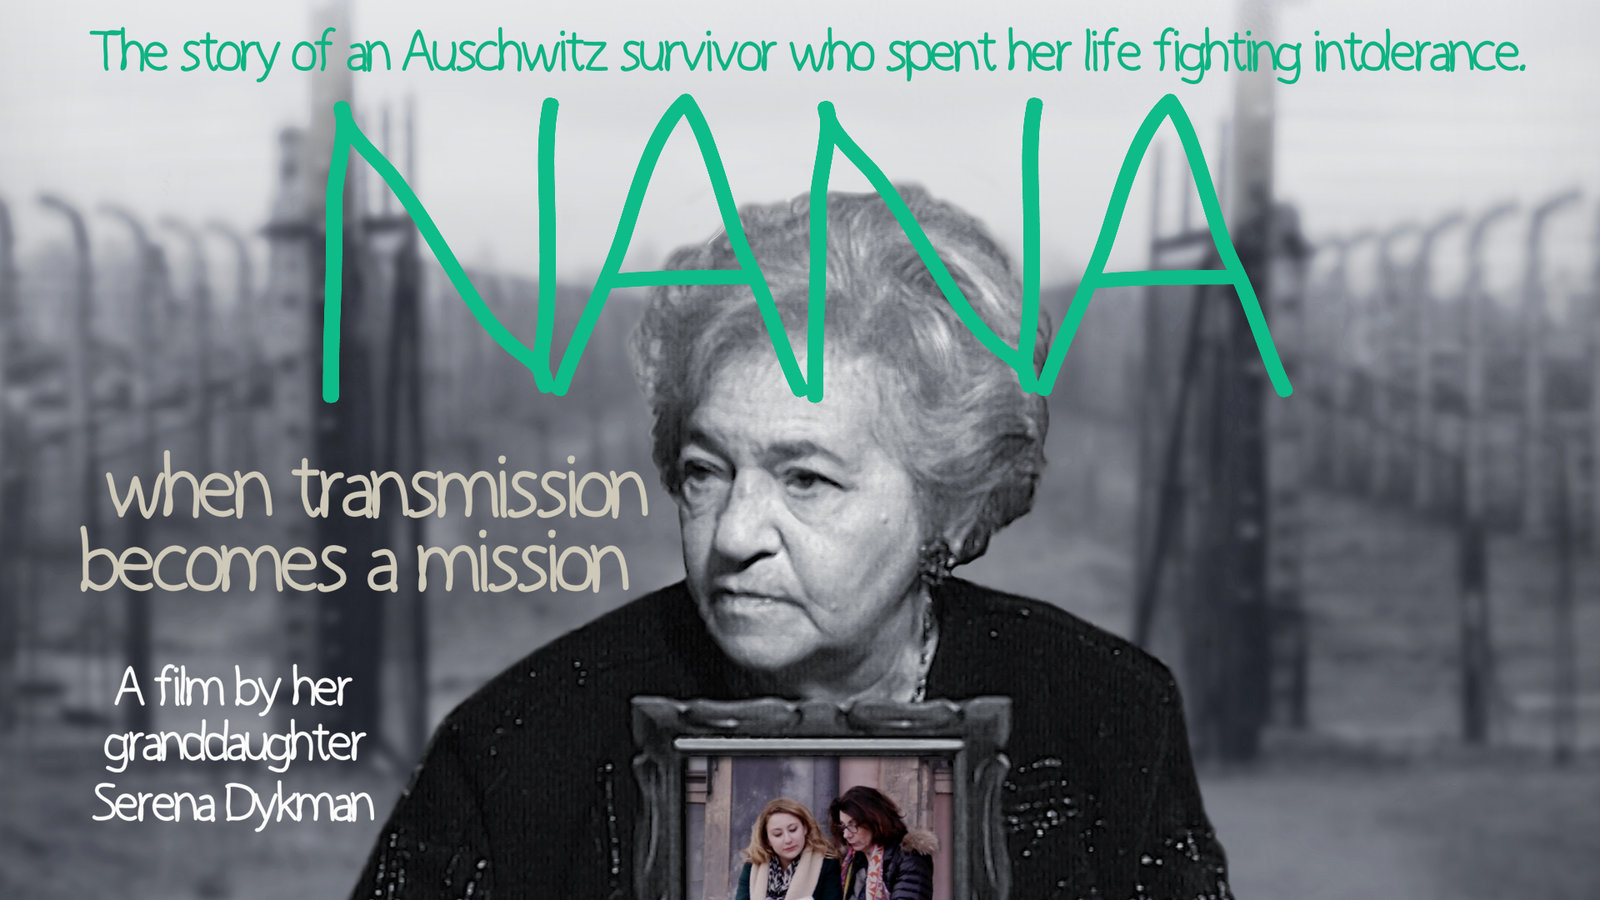 Nana - A Holocaust Survivor Fighting Intolerence